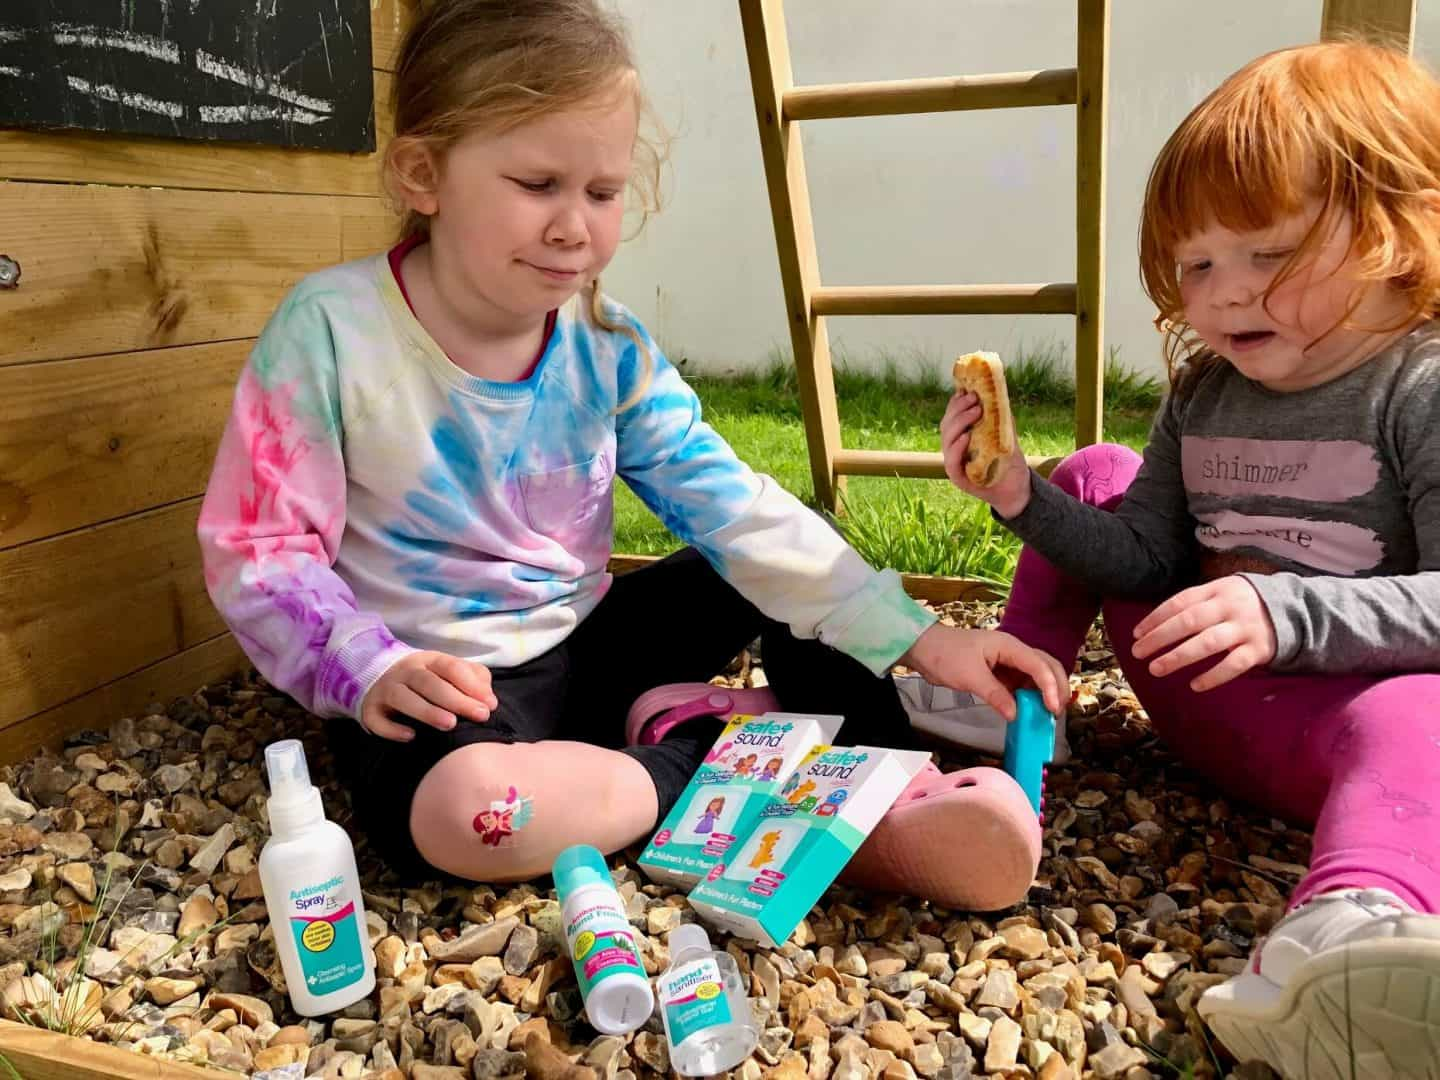 L with a plaster on her knee - Top Tips Packing a First Aid Kit For Outdoor Adventures With The Kids